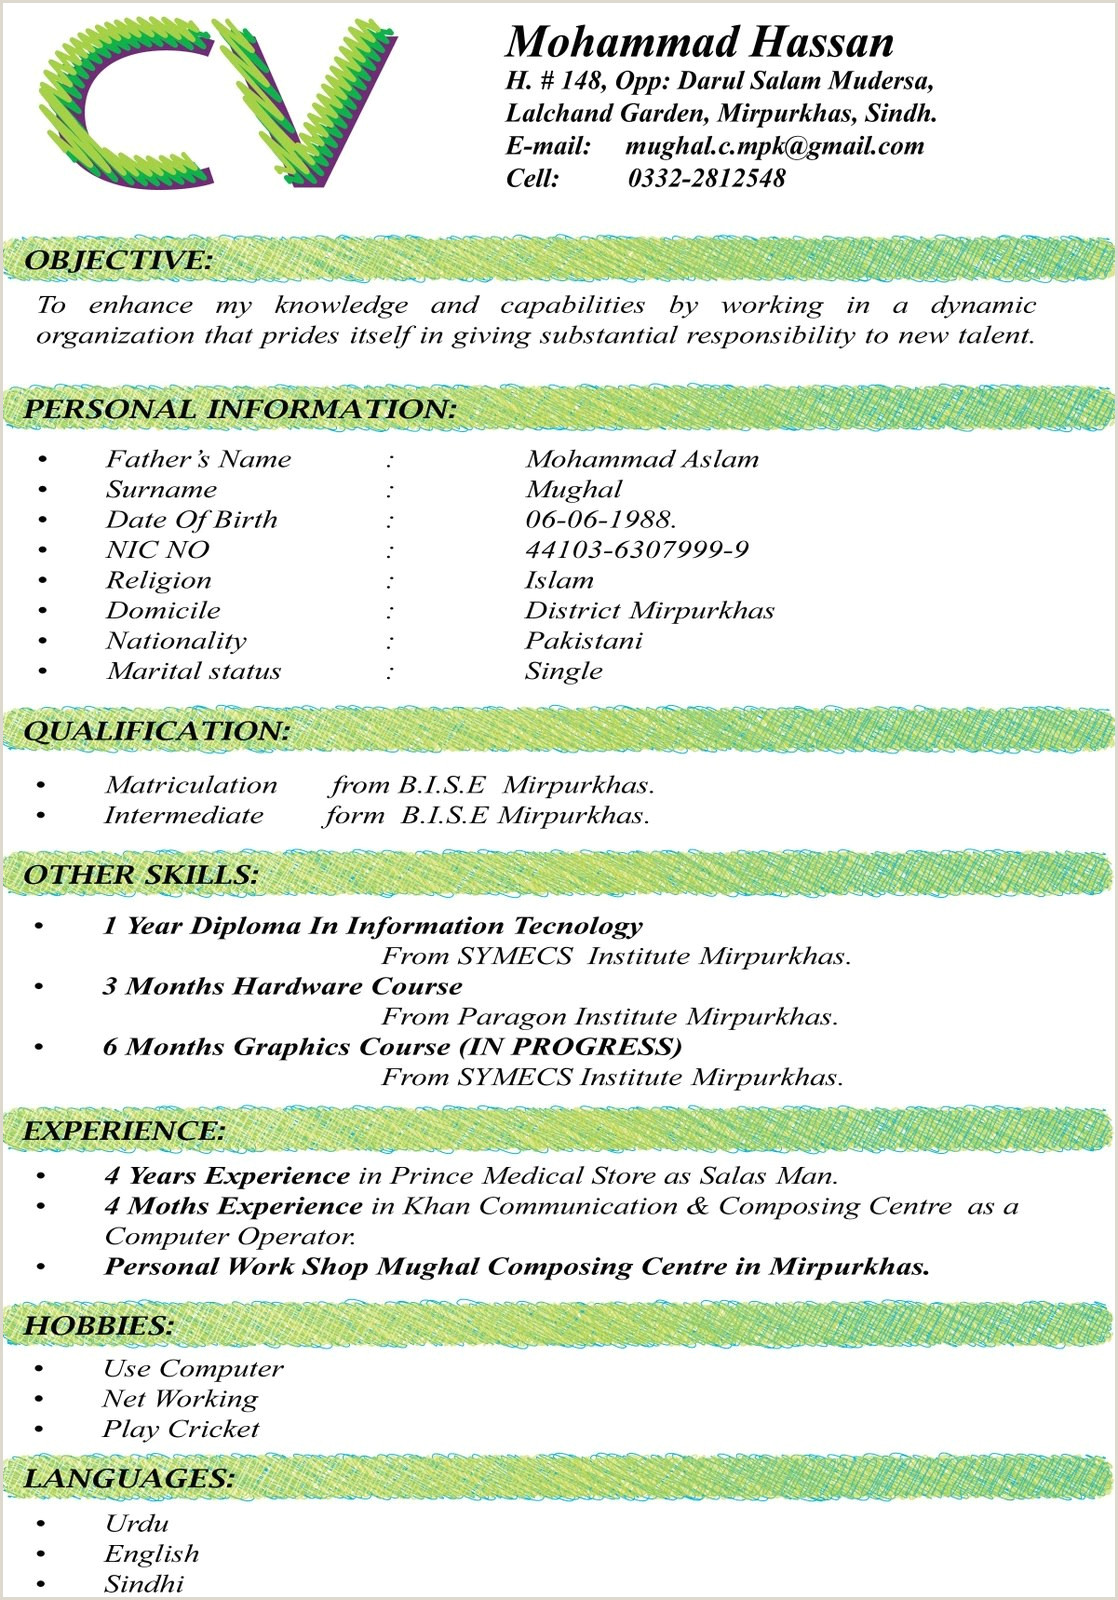 Cv format for Job In Pakistan Write Cv for Job Filename Curriculum Vitae Tips Stunning